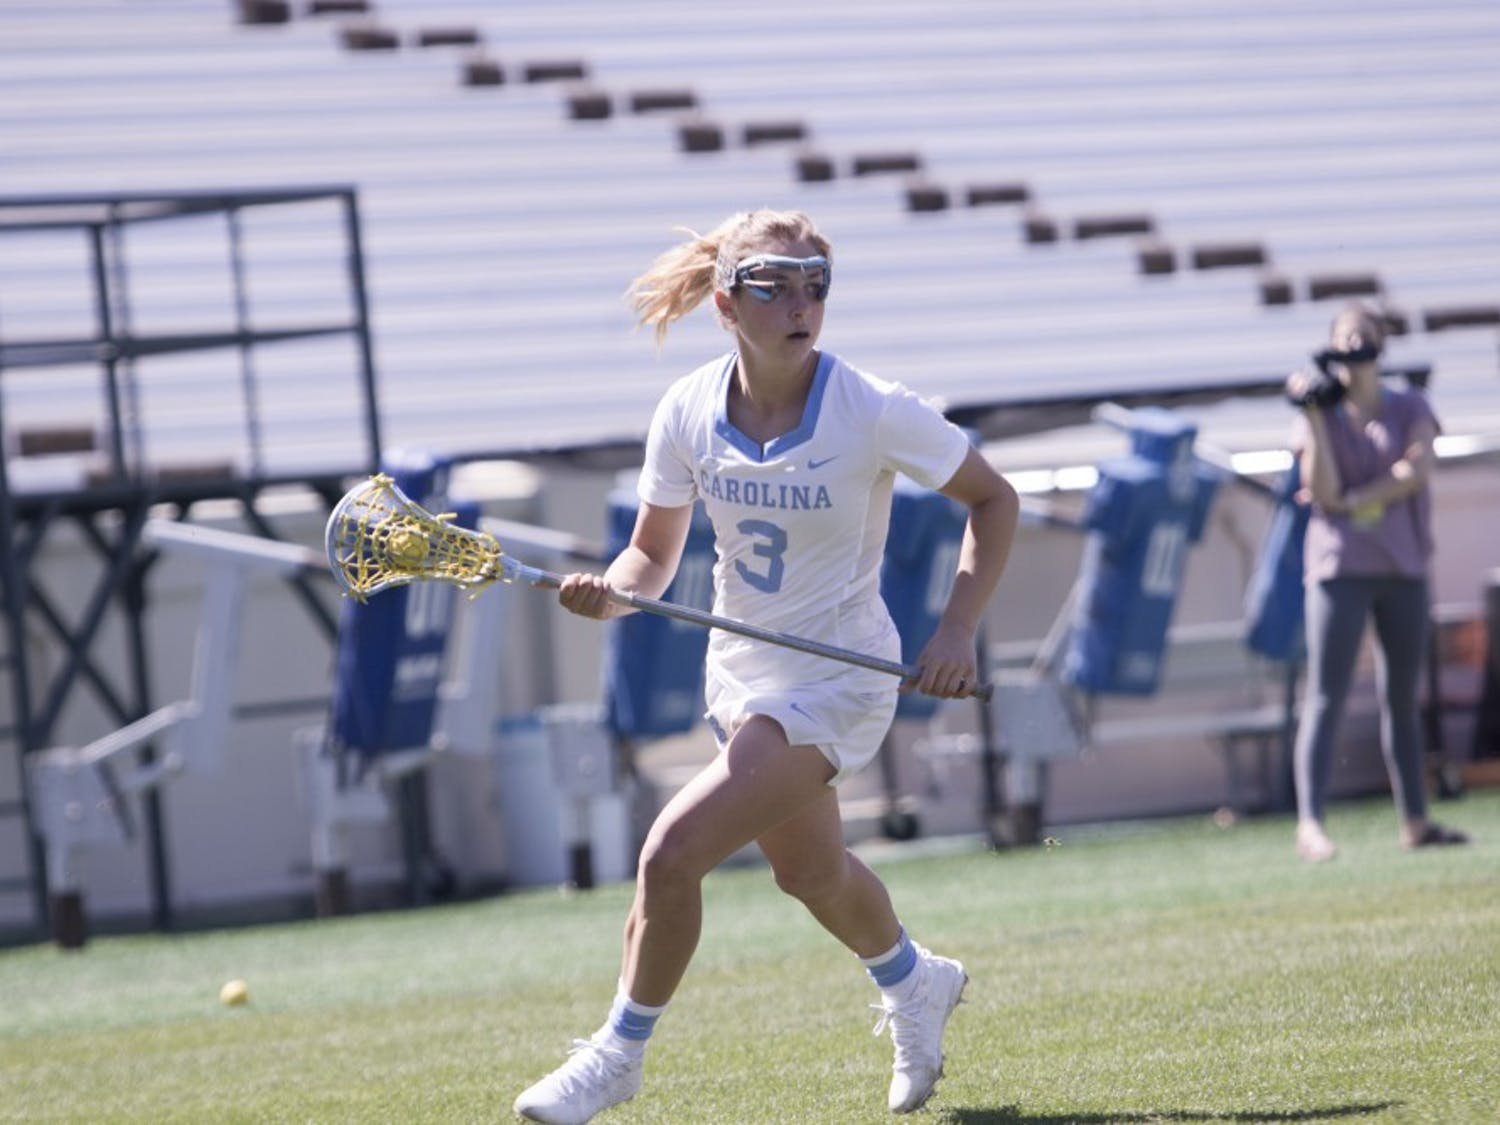 Jamie Ortega (3) advances the ball against Notre Dame on March 31, 2018 in Kenan Stadium.